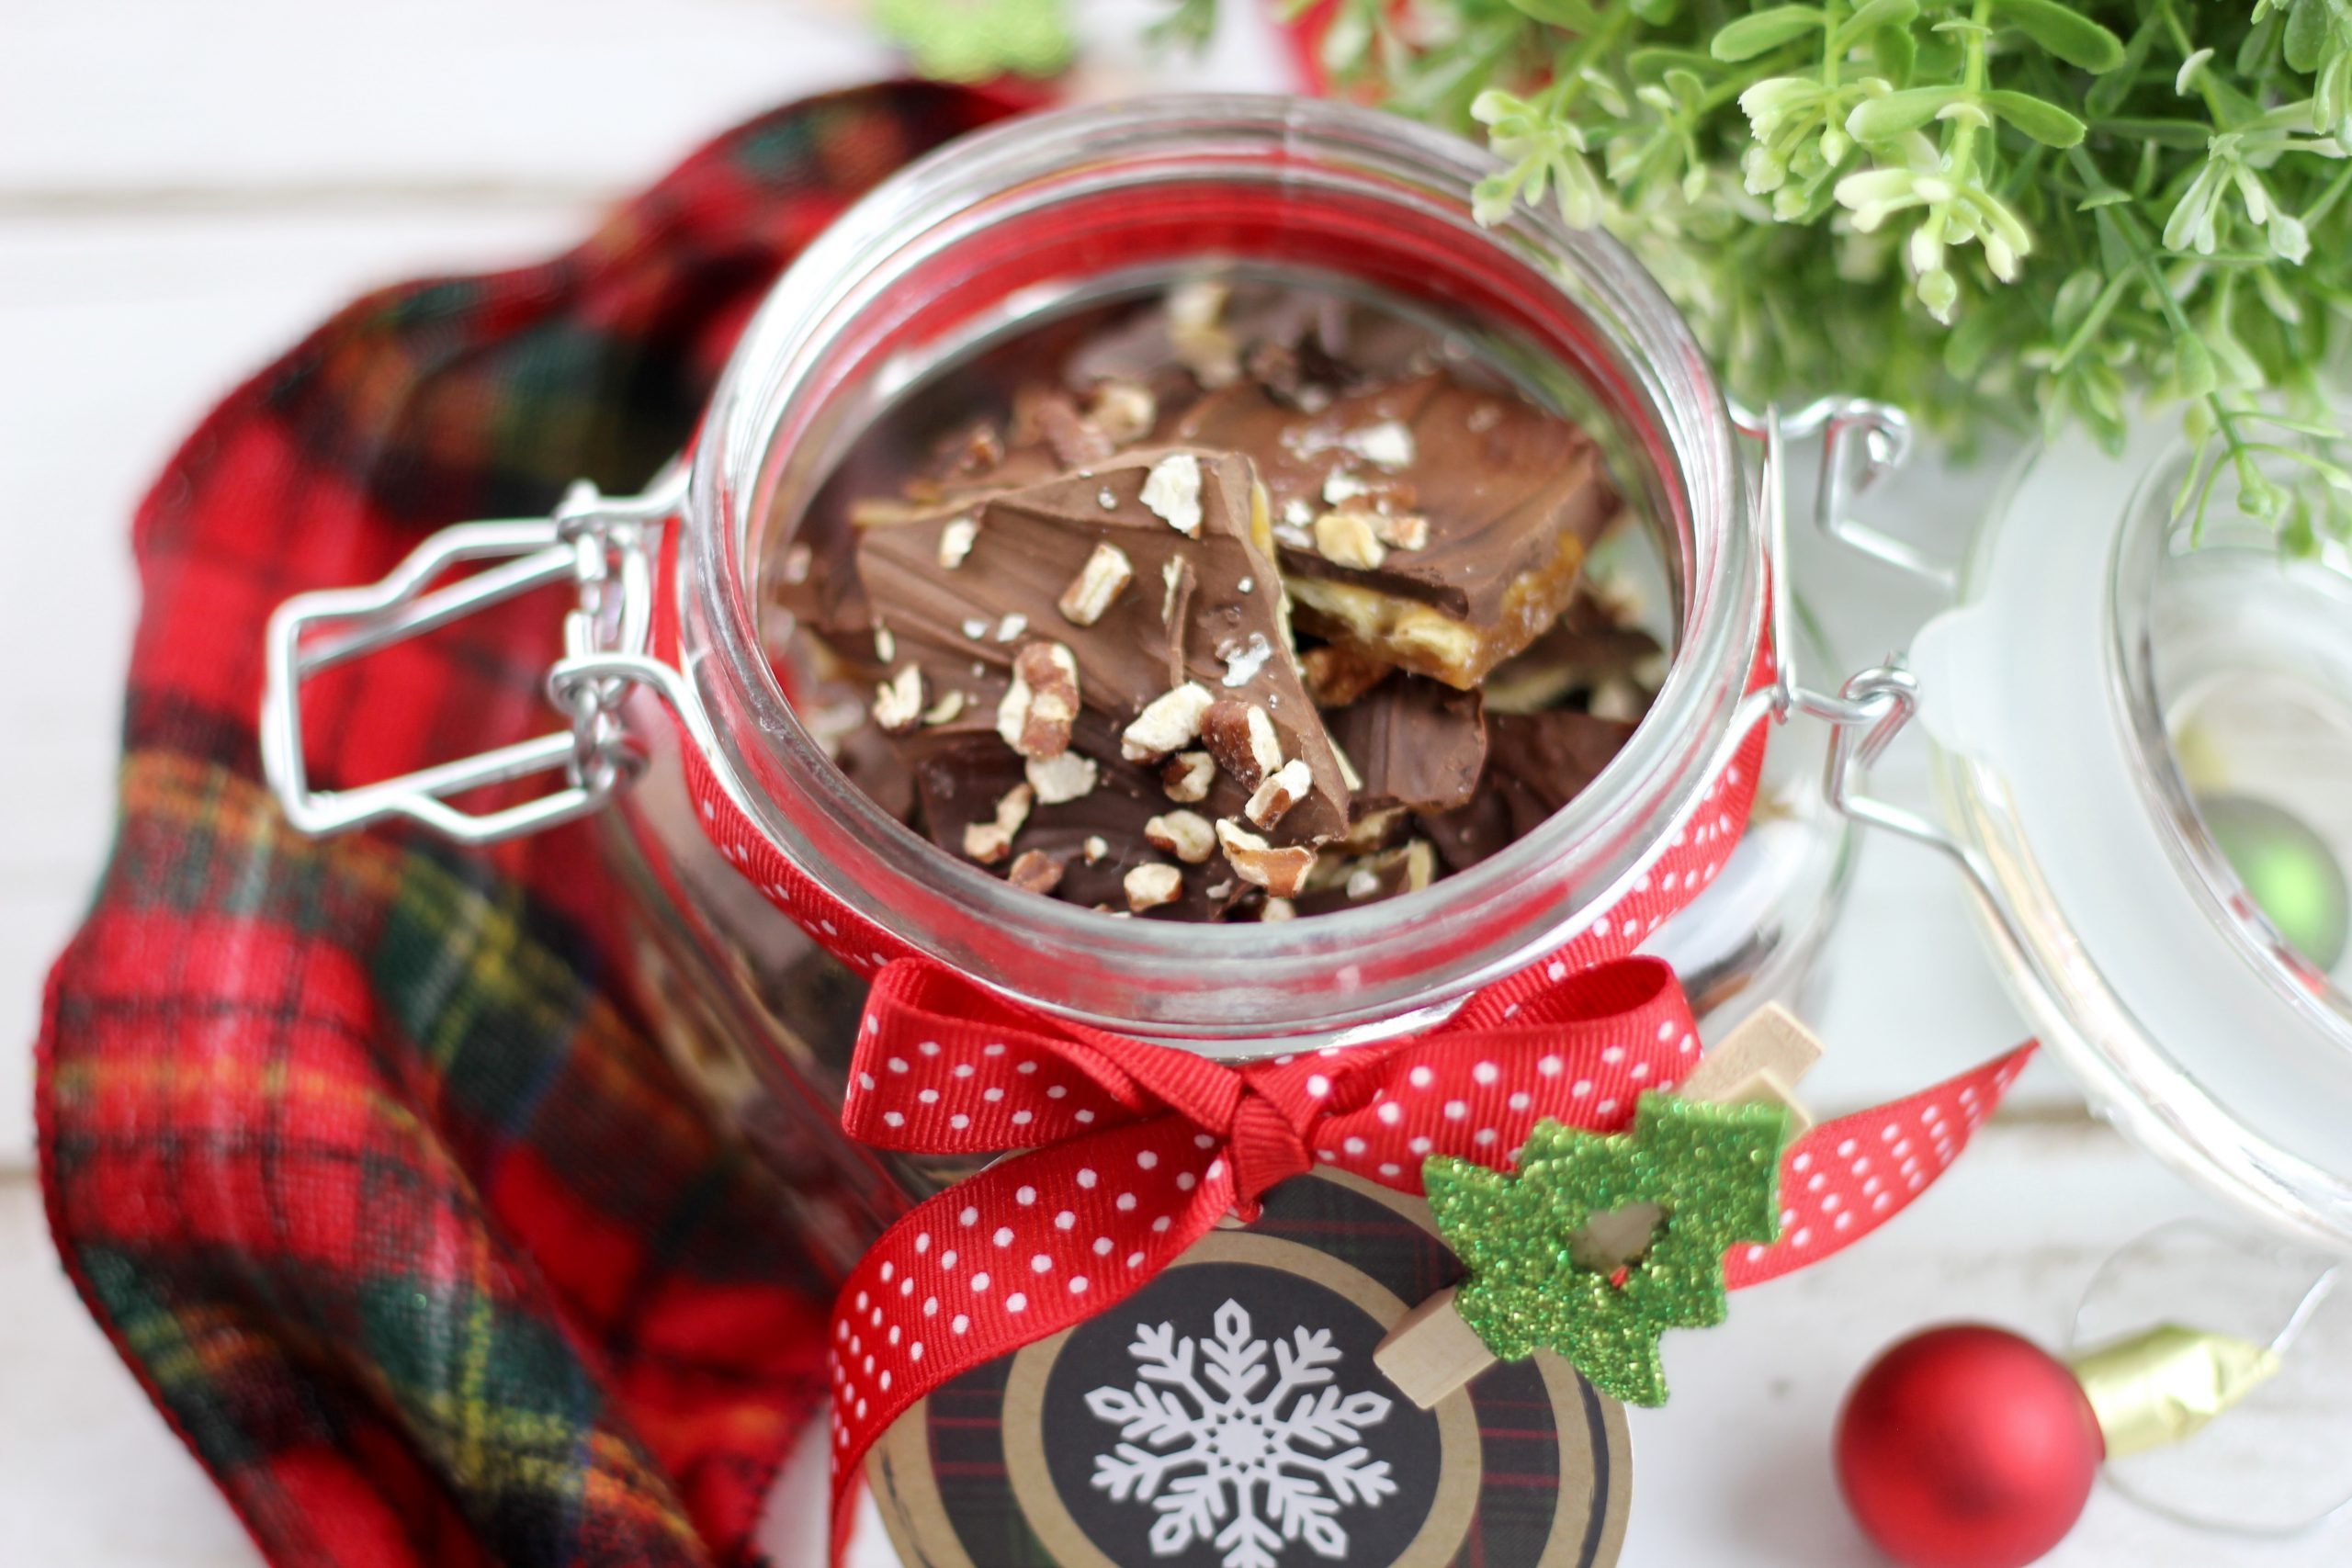 Try these amazing Christmas Crack Recipes that will have you coming back for more. The salty, sweet combo of this holiday candy idea is addictively good and easy to make!